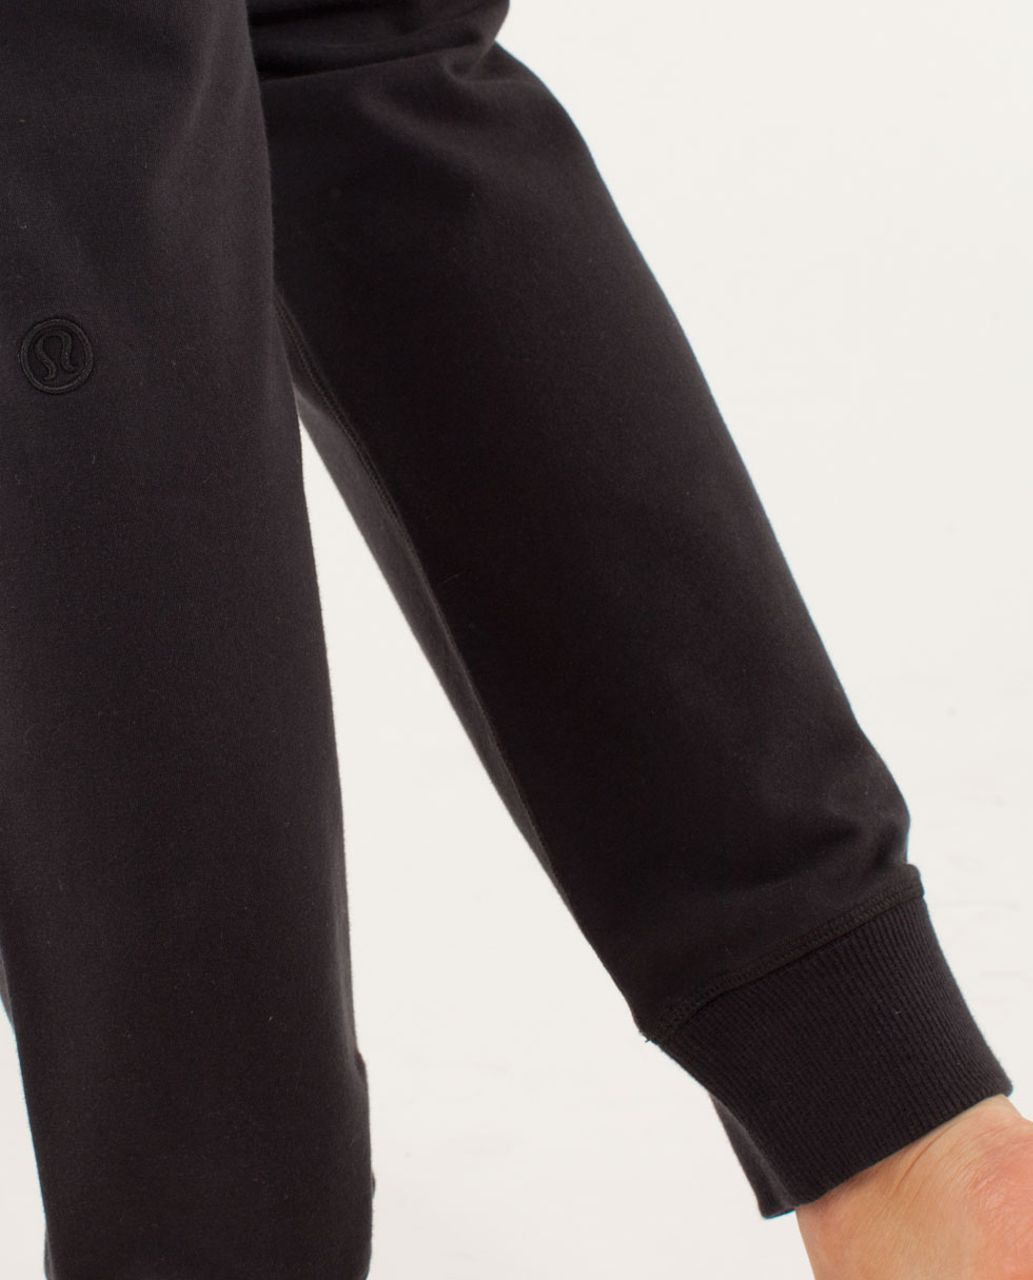 5af4e17f020e2 Lululemon Tea Lounge Pant - Black - lulu fanatics